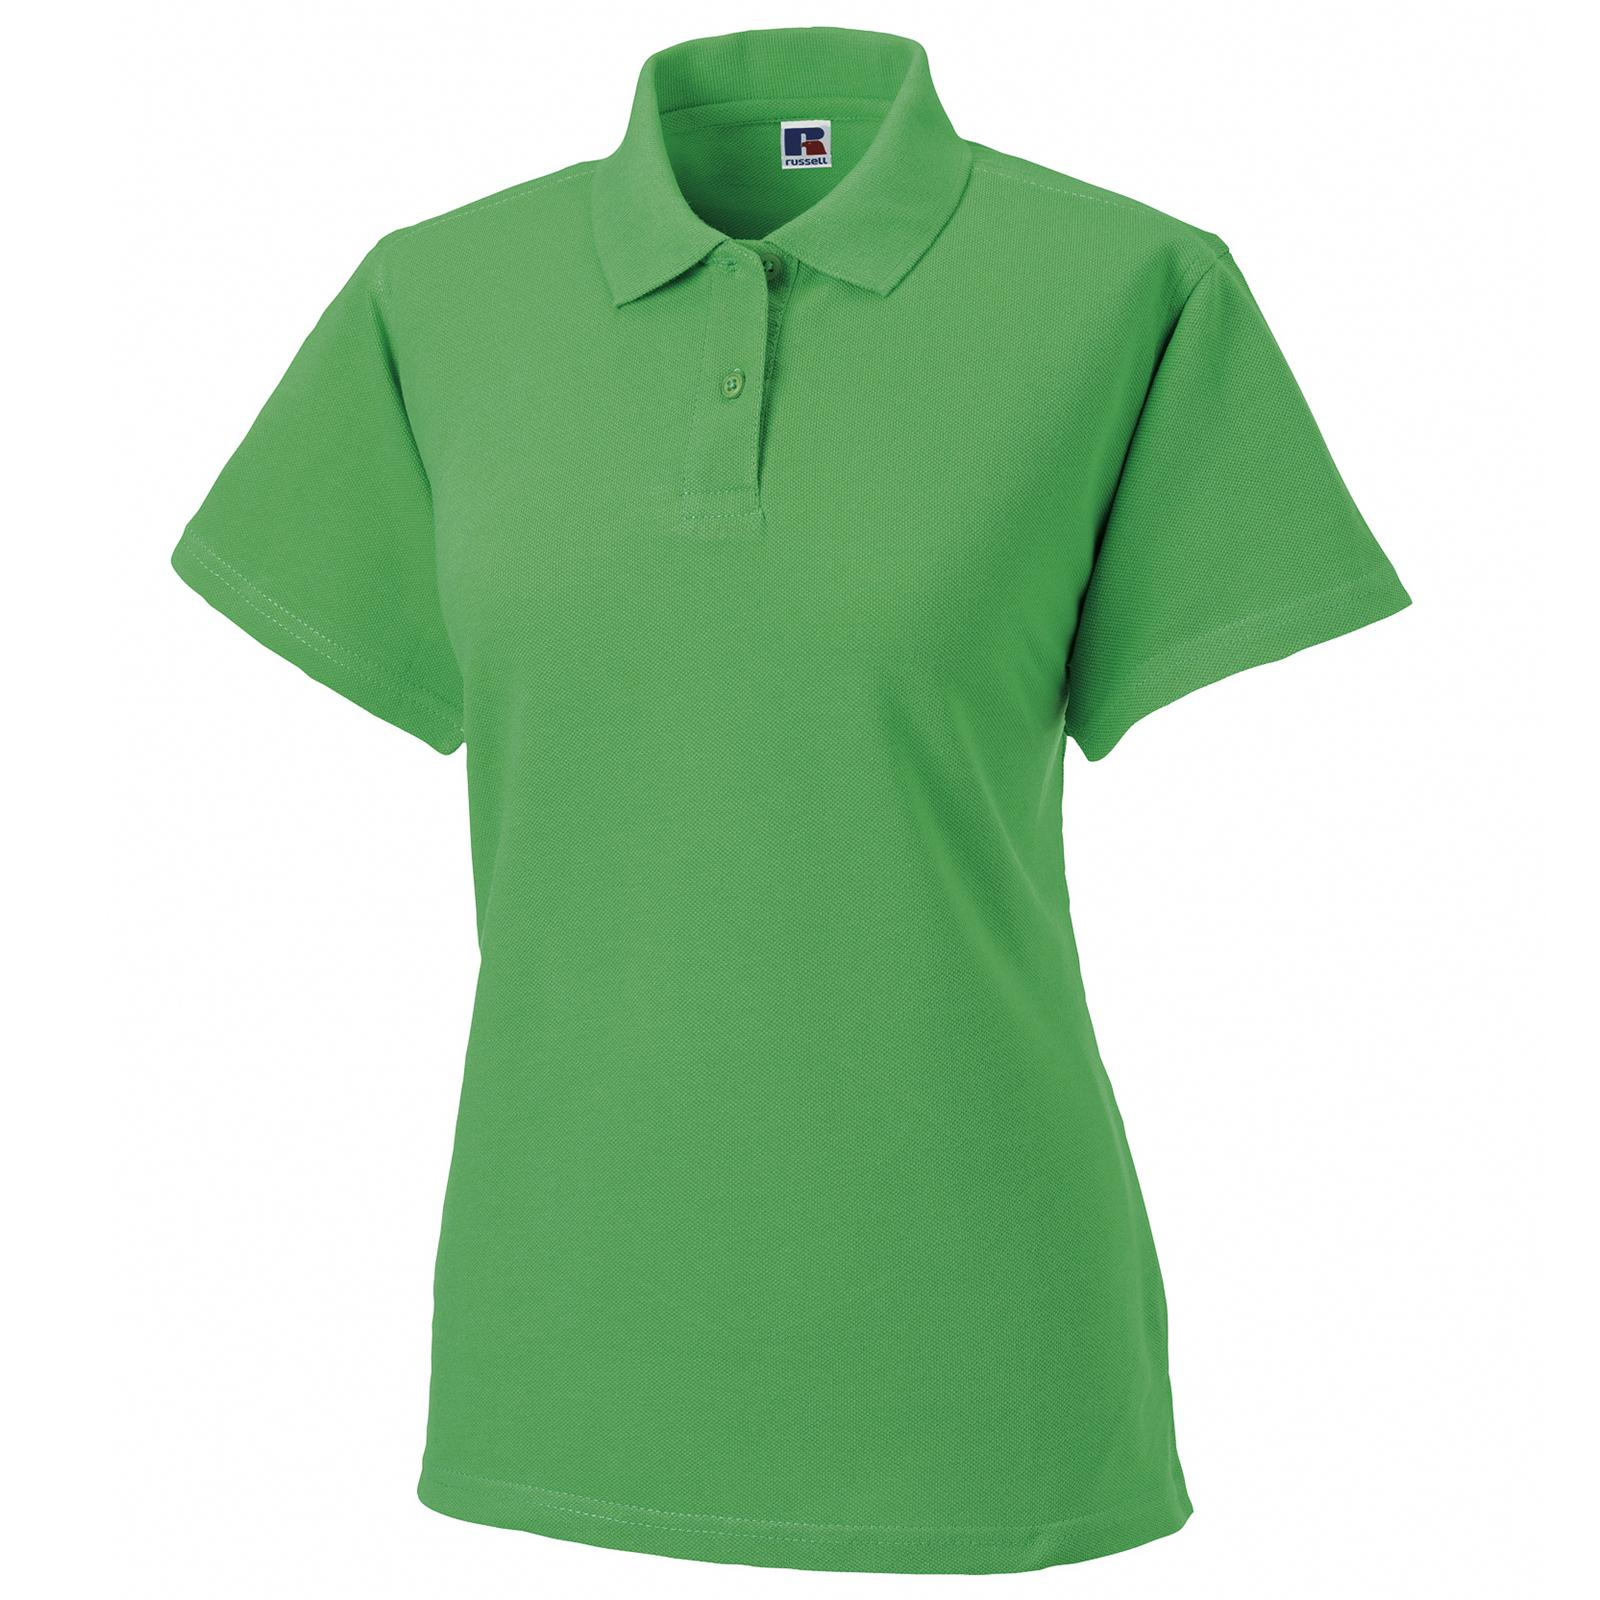 New Jerzees Womens Ladies 100 Cotton Polo Shirt In 12